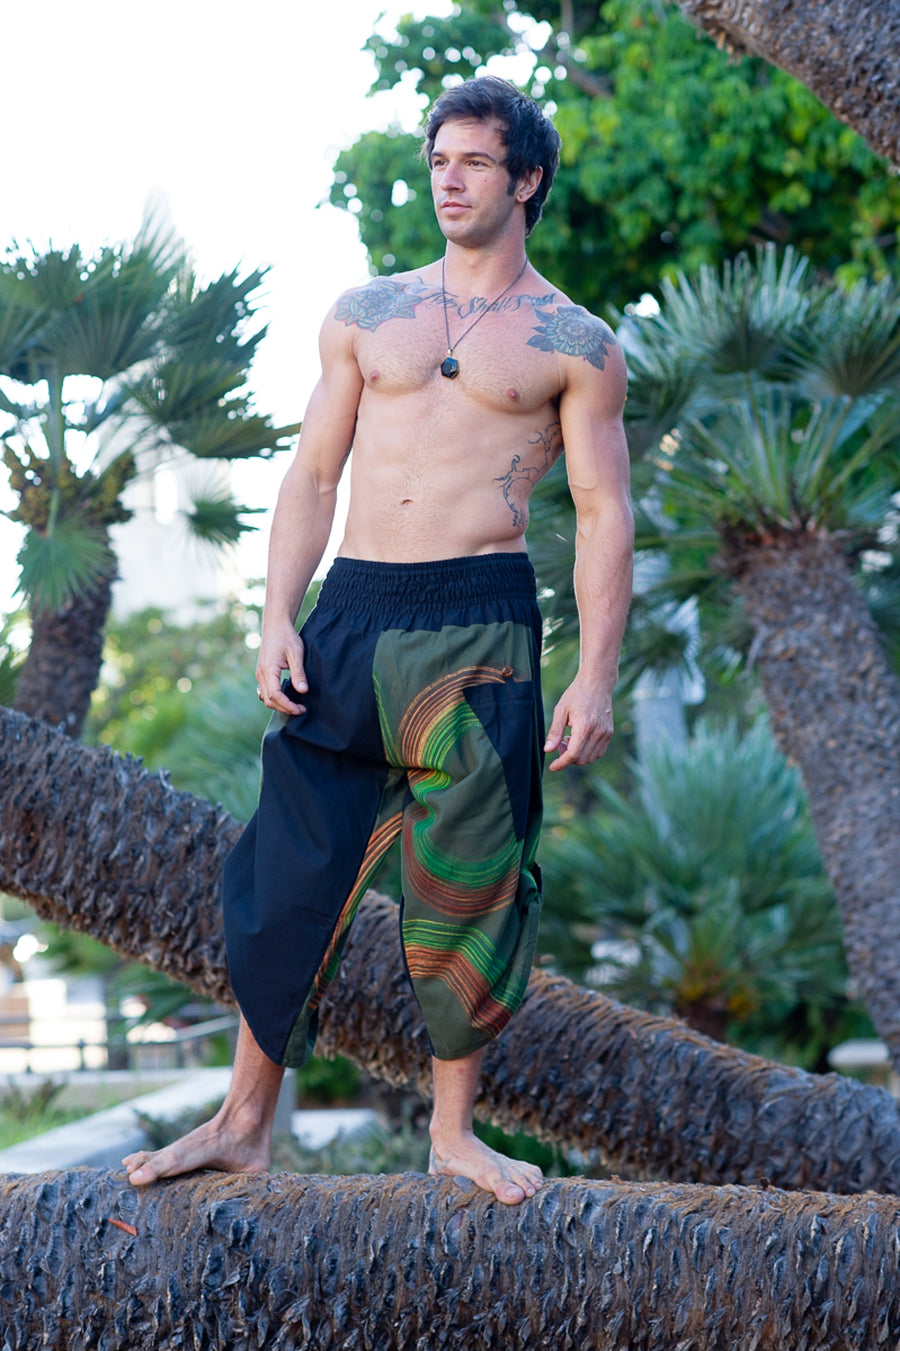 Samurai Elastic Shorts in Forest Swirl-The High Thai-The High Thai-Yoga Pants-Harem Pants-Hippie Clothing-San Diego